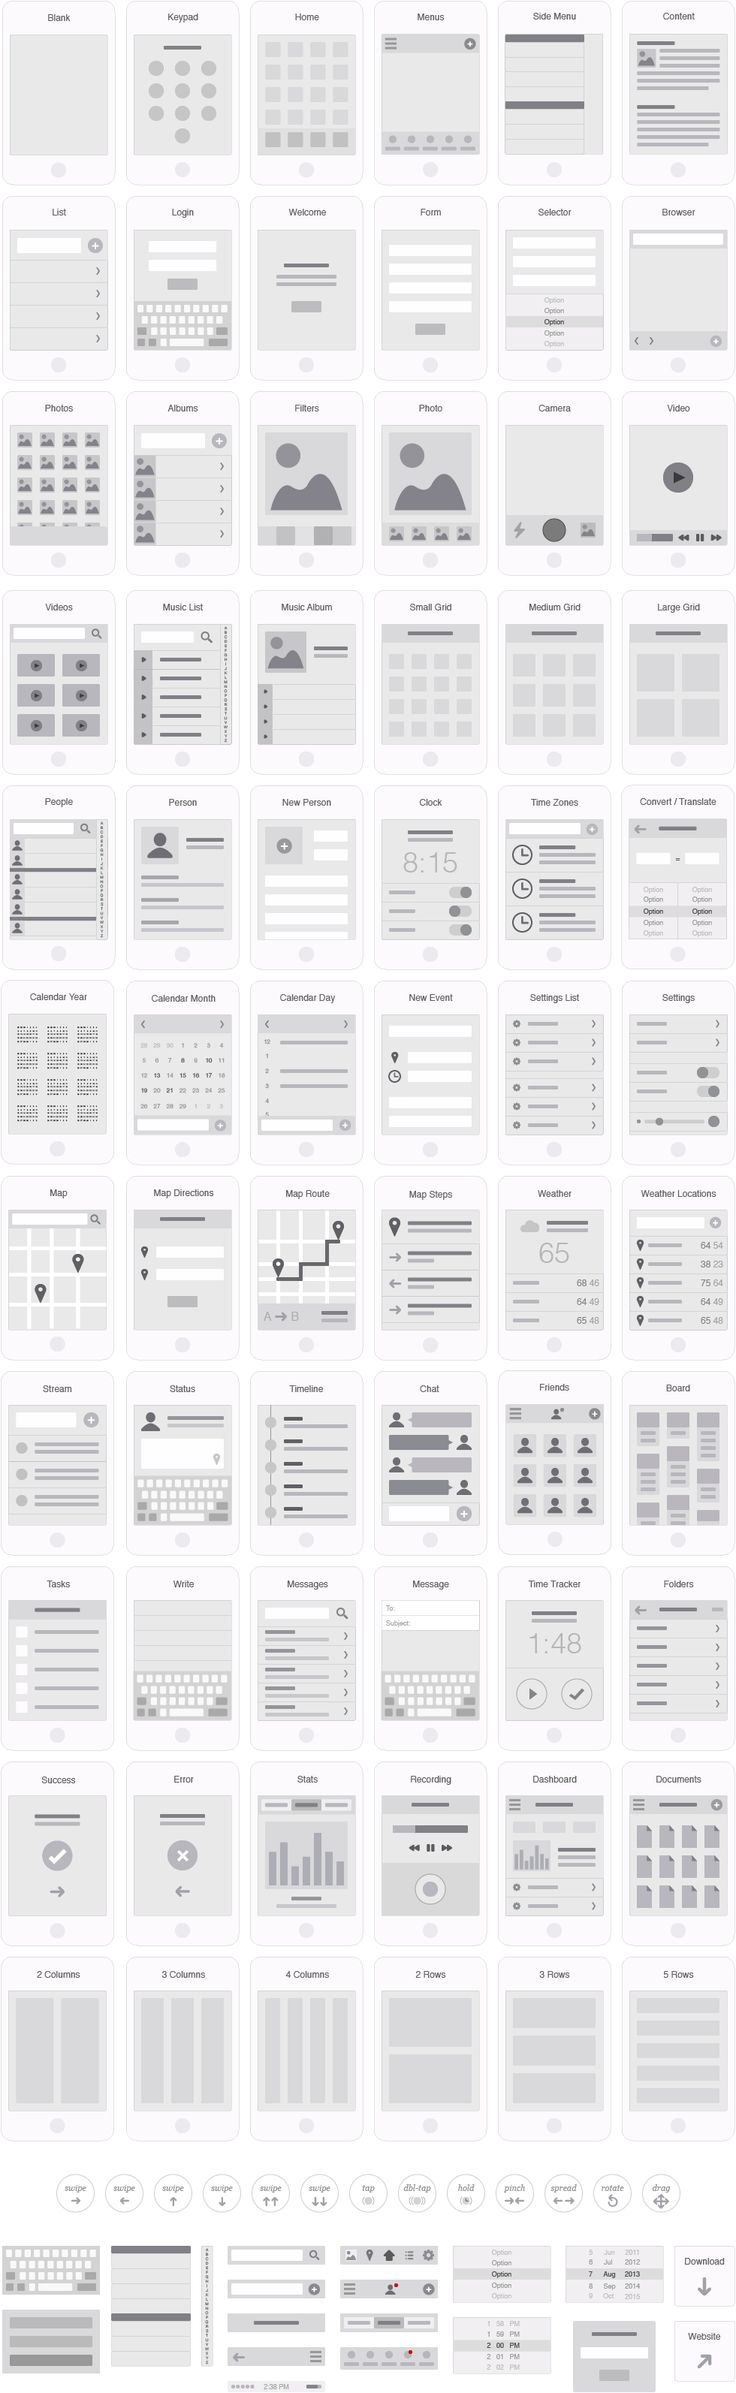 Mobile App Visual Flowchart Illustrator Template – UX Kits #ux #webdesign